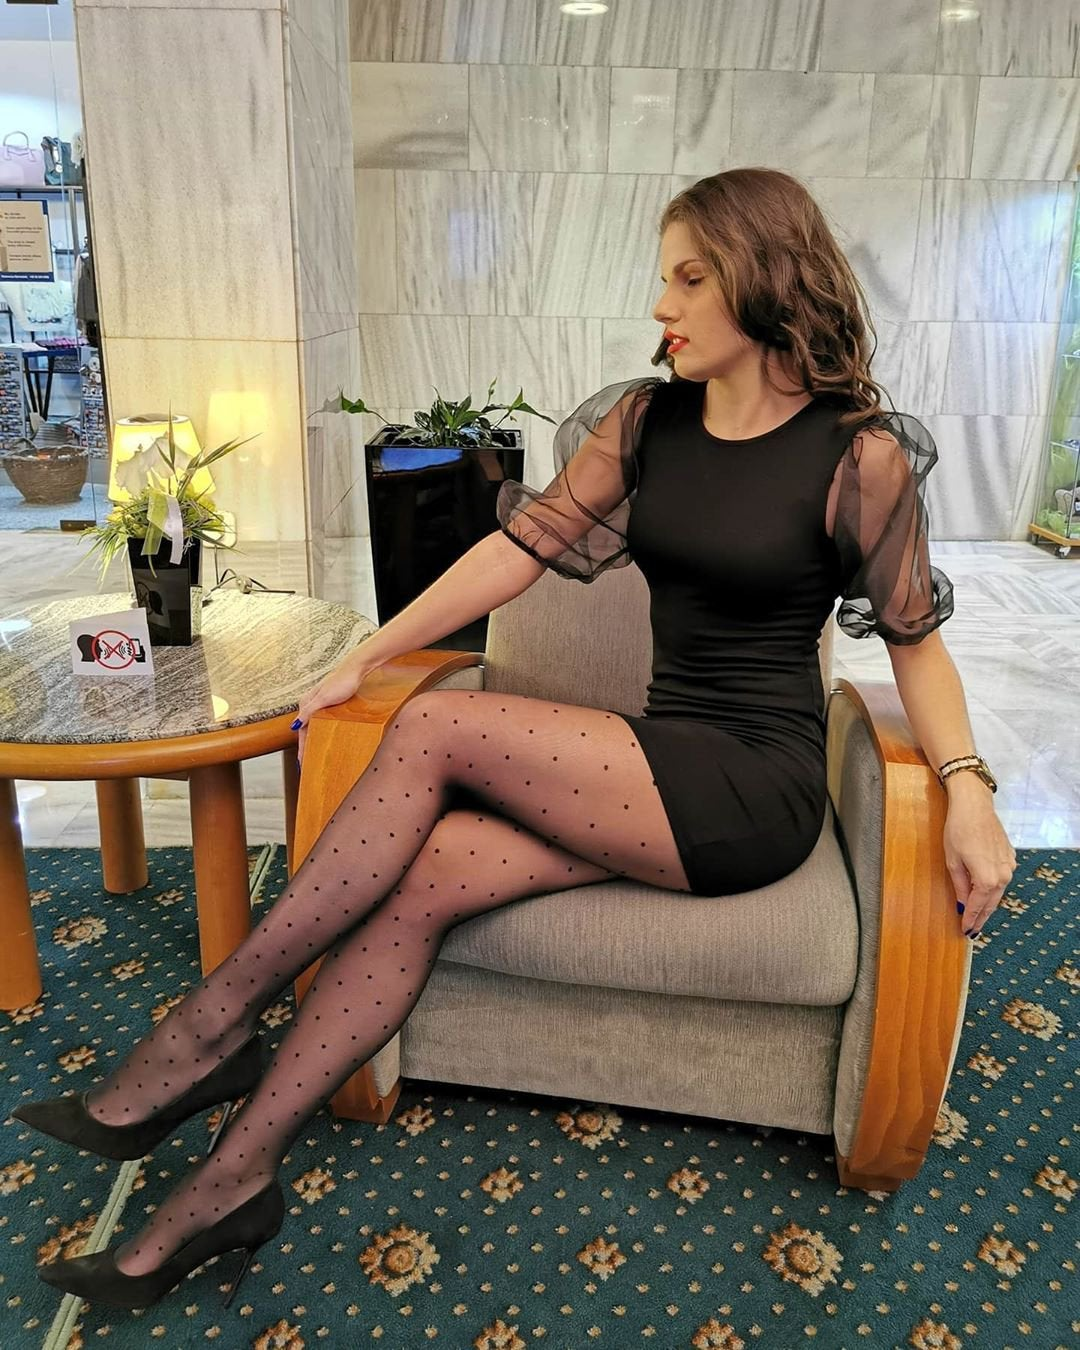 Showing Off Legs photo 19